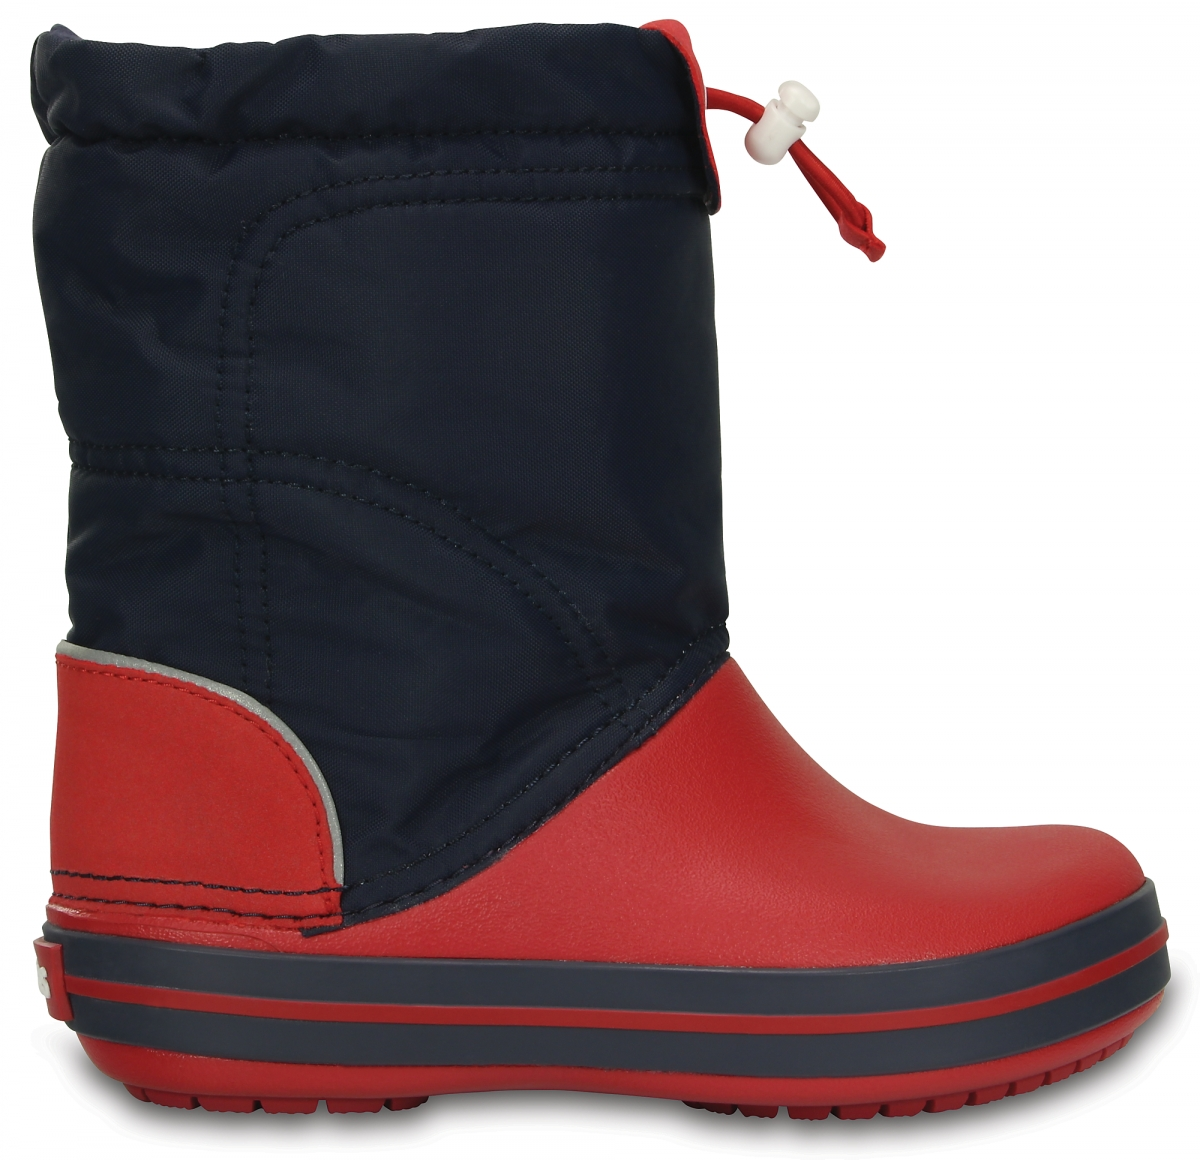 Crocs Crocband LodgePoint Boot Kids Navy/Red, C13 (30-31)